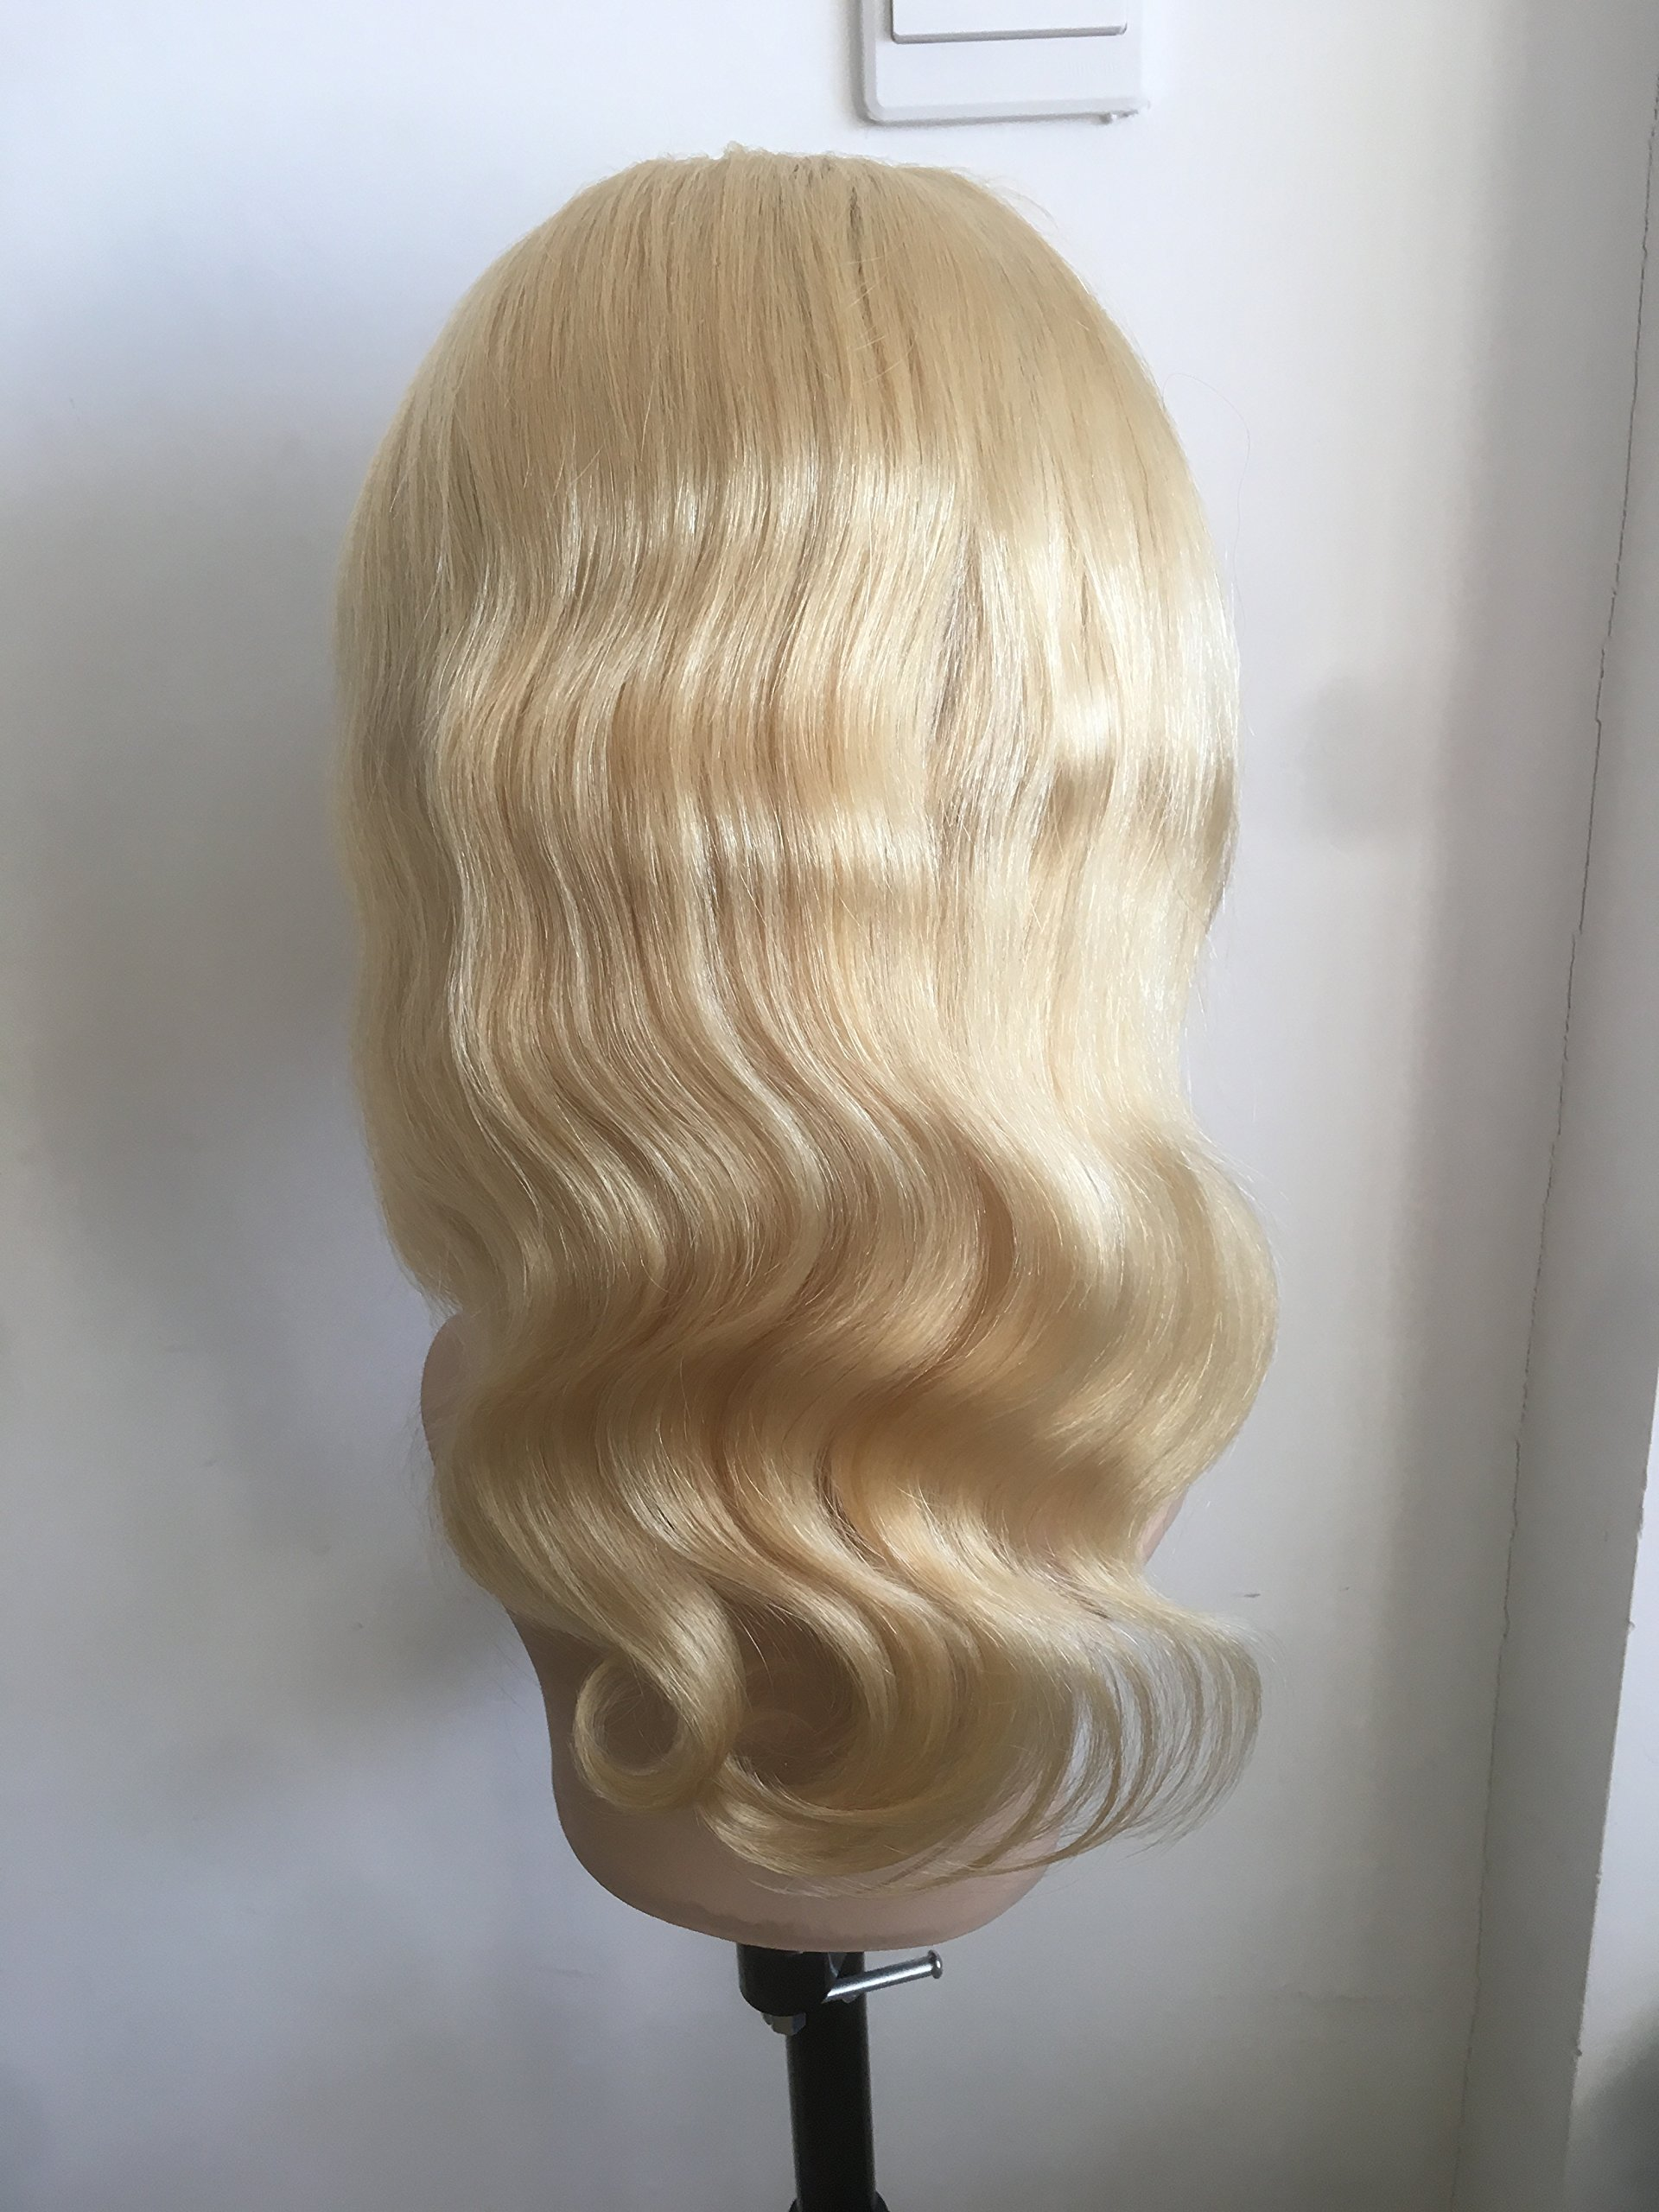 100%10A HUMAN HAIR CHINESE VIRGIN REMI FULL LACE WIG LADY WIG BLOND COLOR (12inch) by Superiorlacewigs (Image #2)